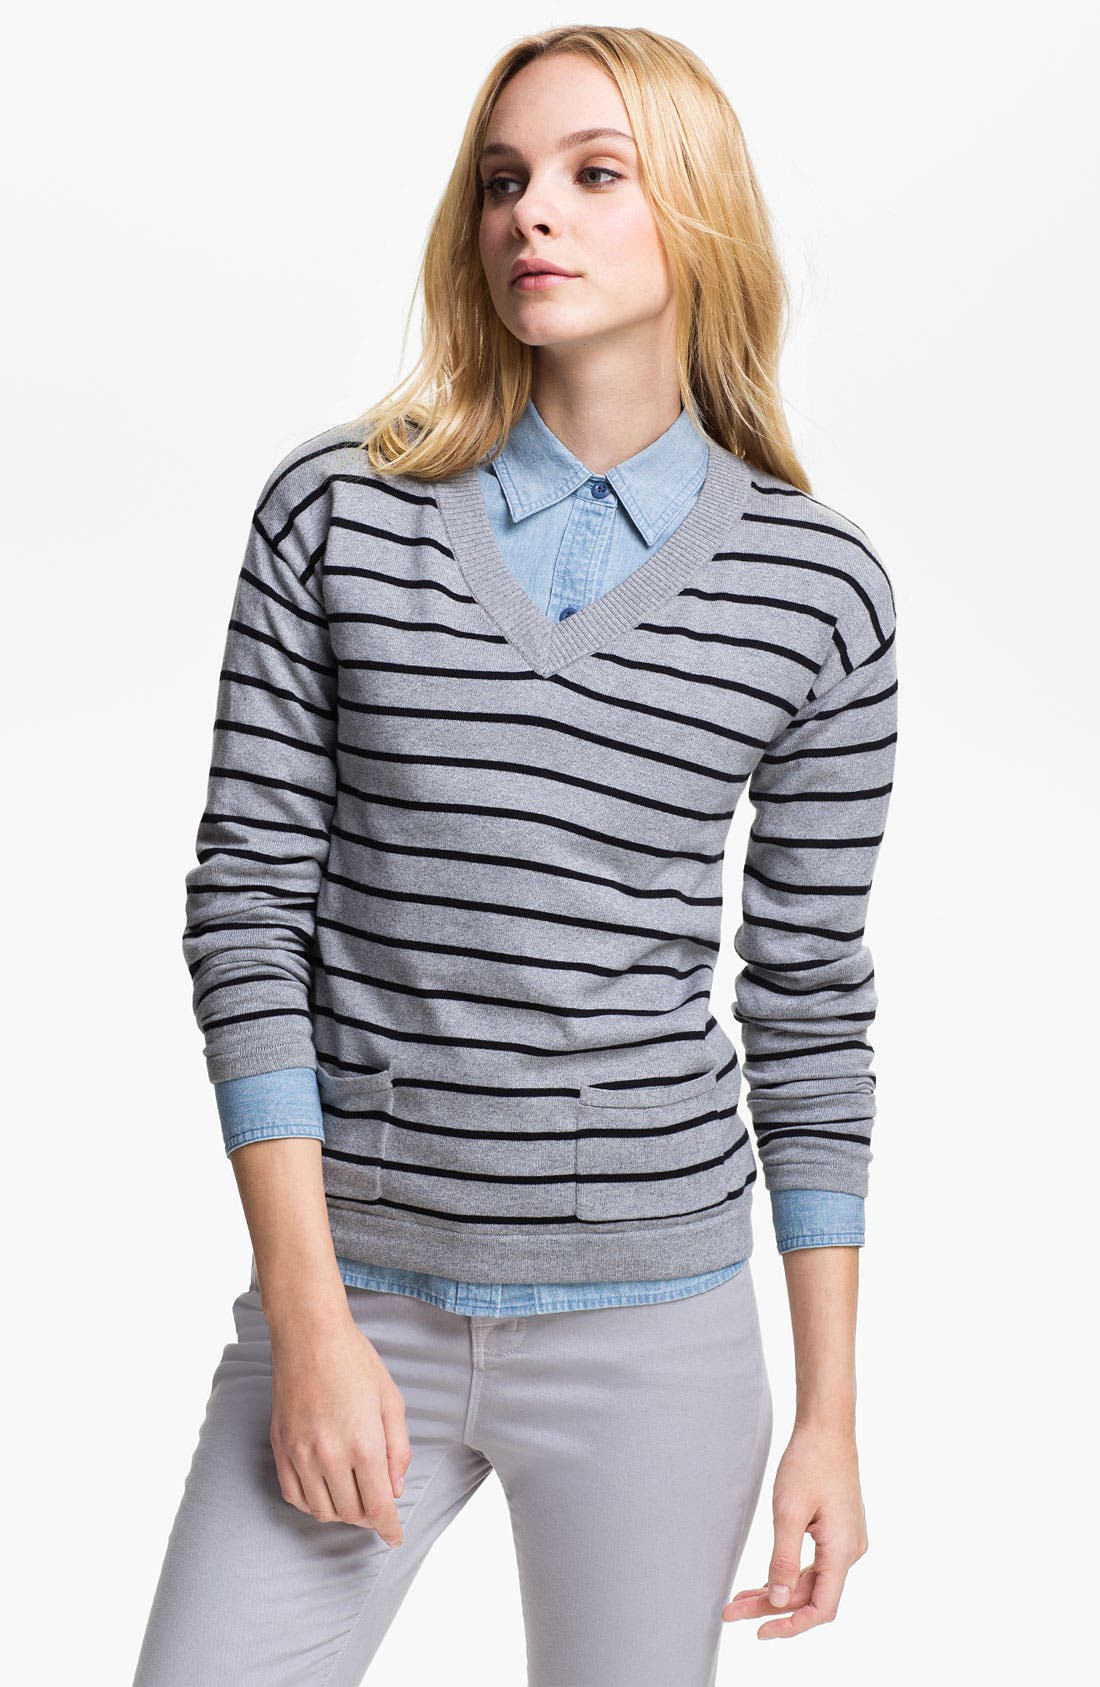 Alternate Image 1 Selected - Two by Vince Camuto Stripe V-Neck Sweater